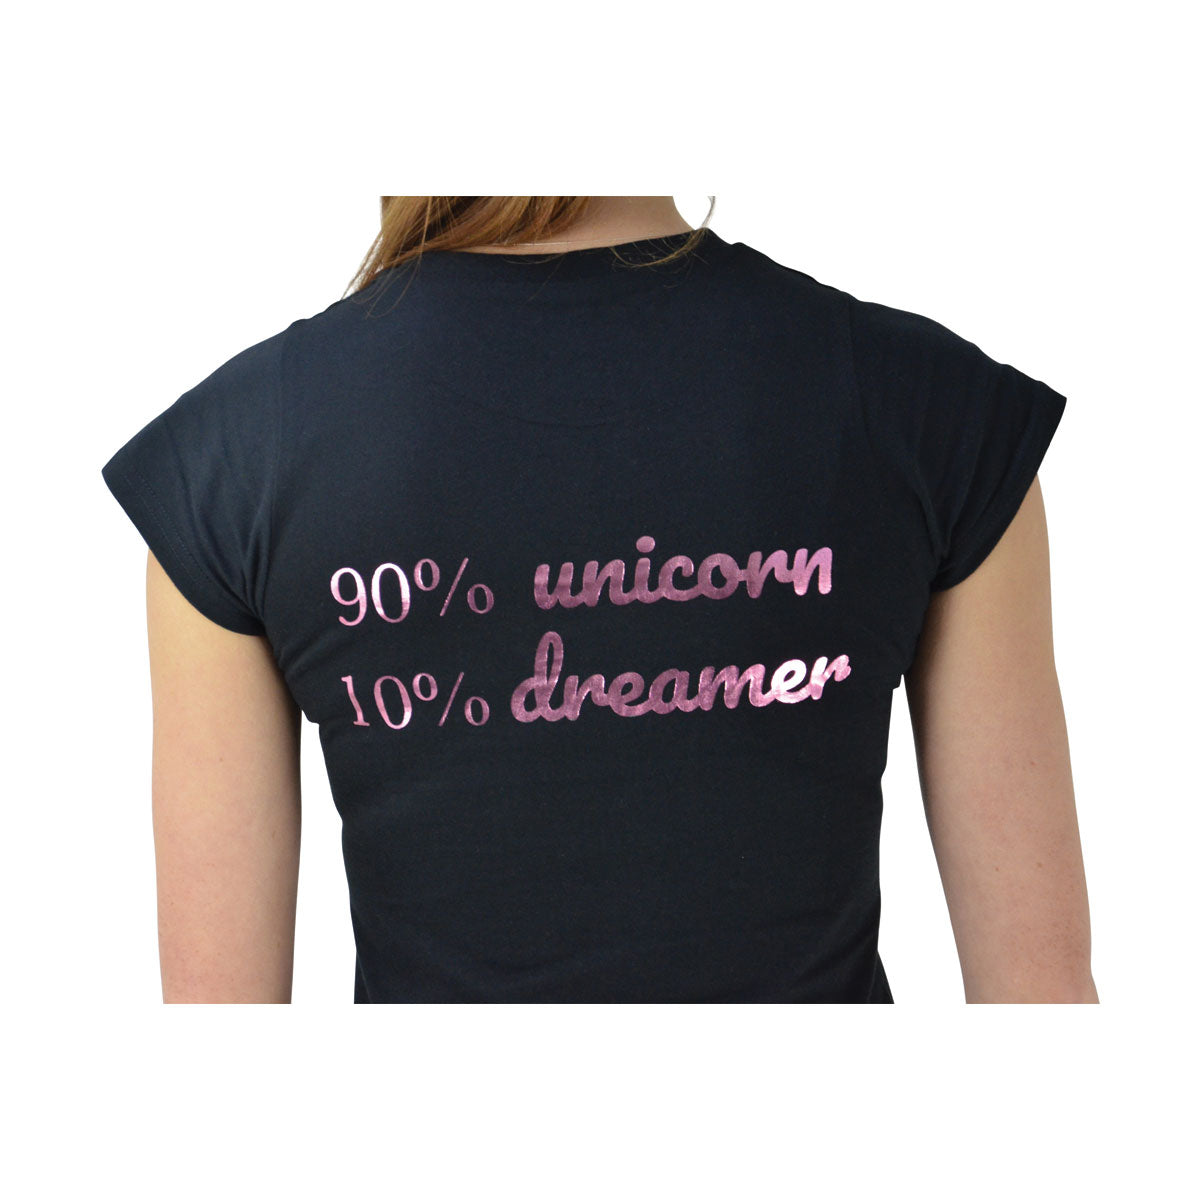 HyFASHION Unicorn Dreamer T-Shirt